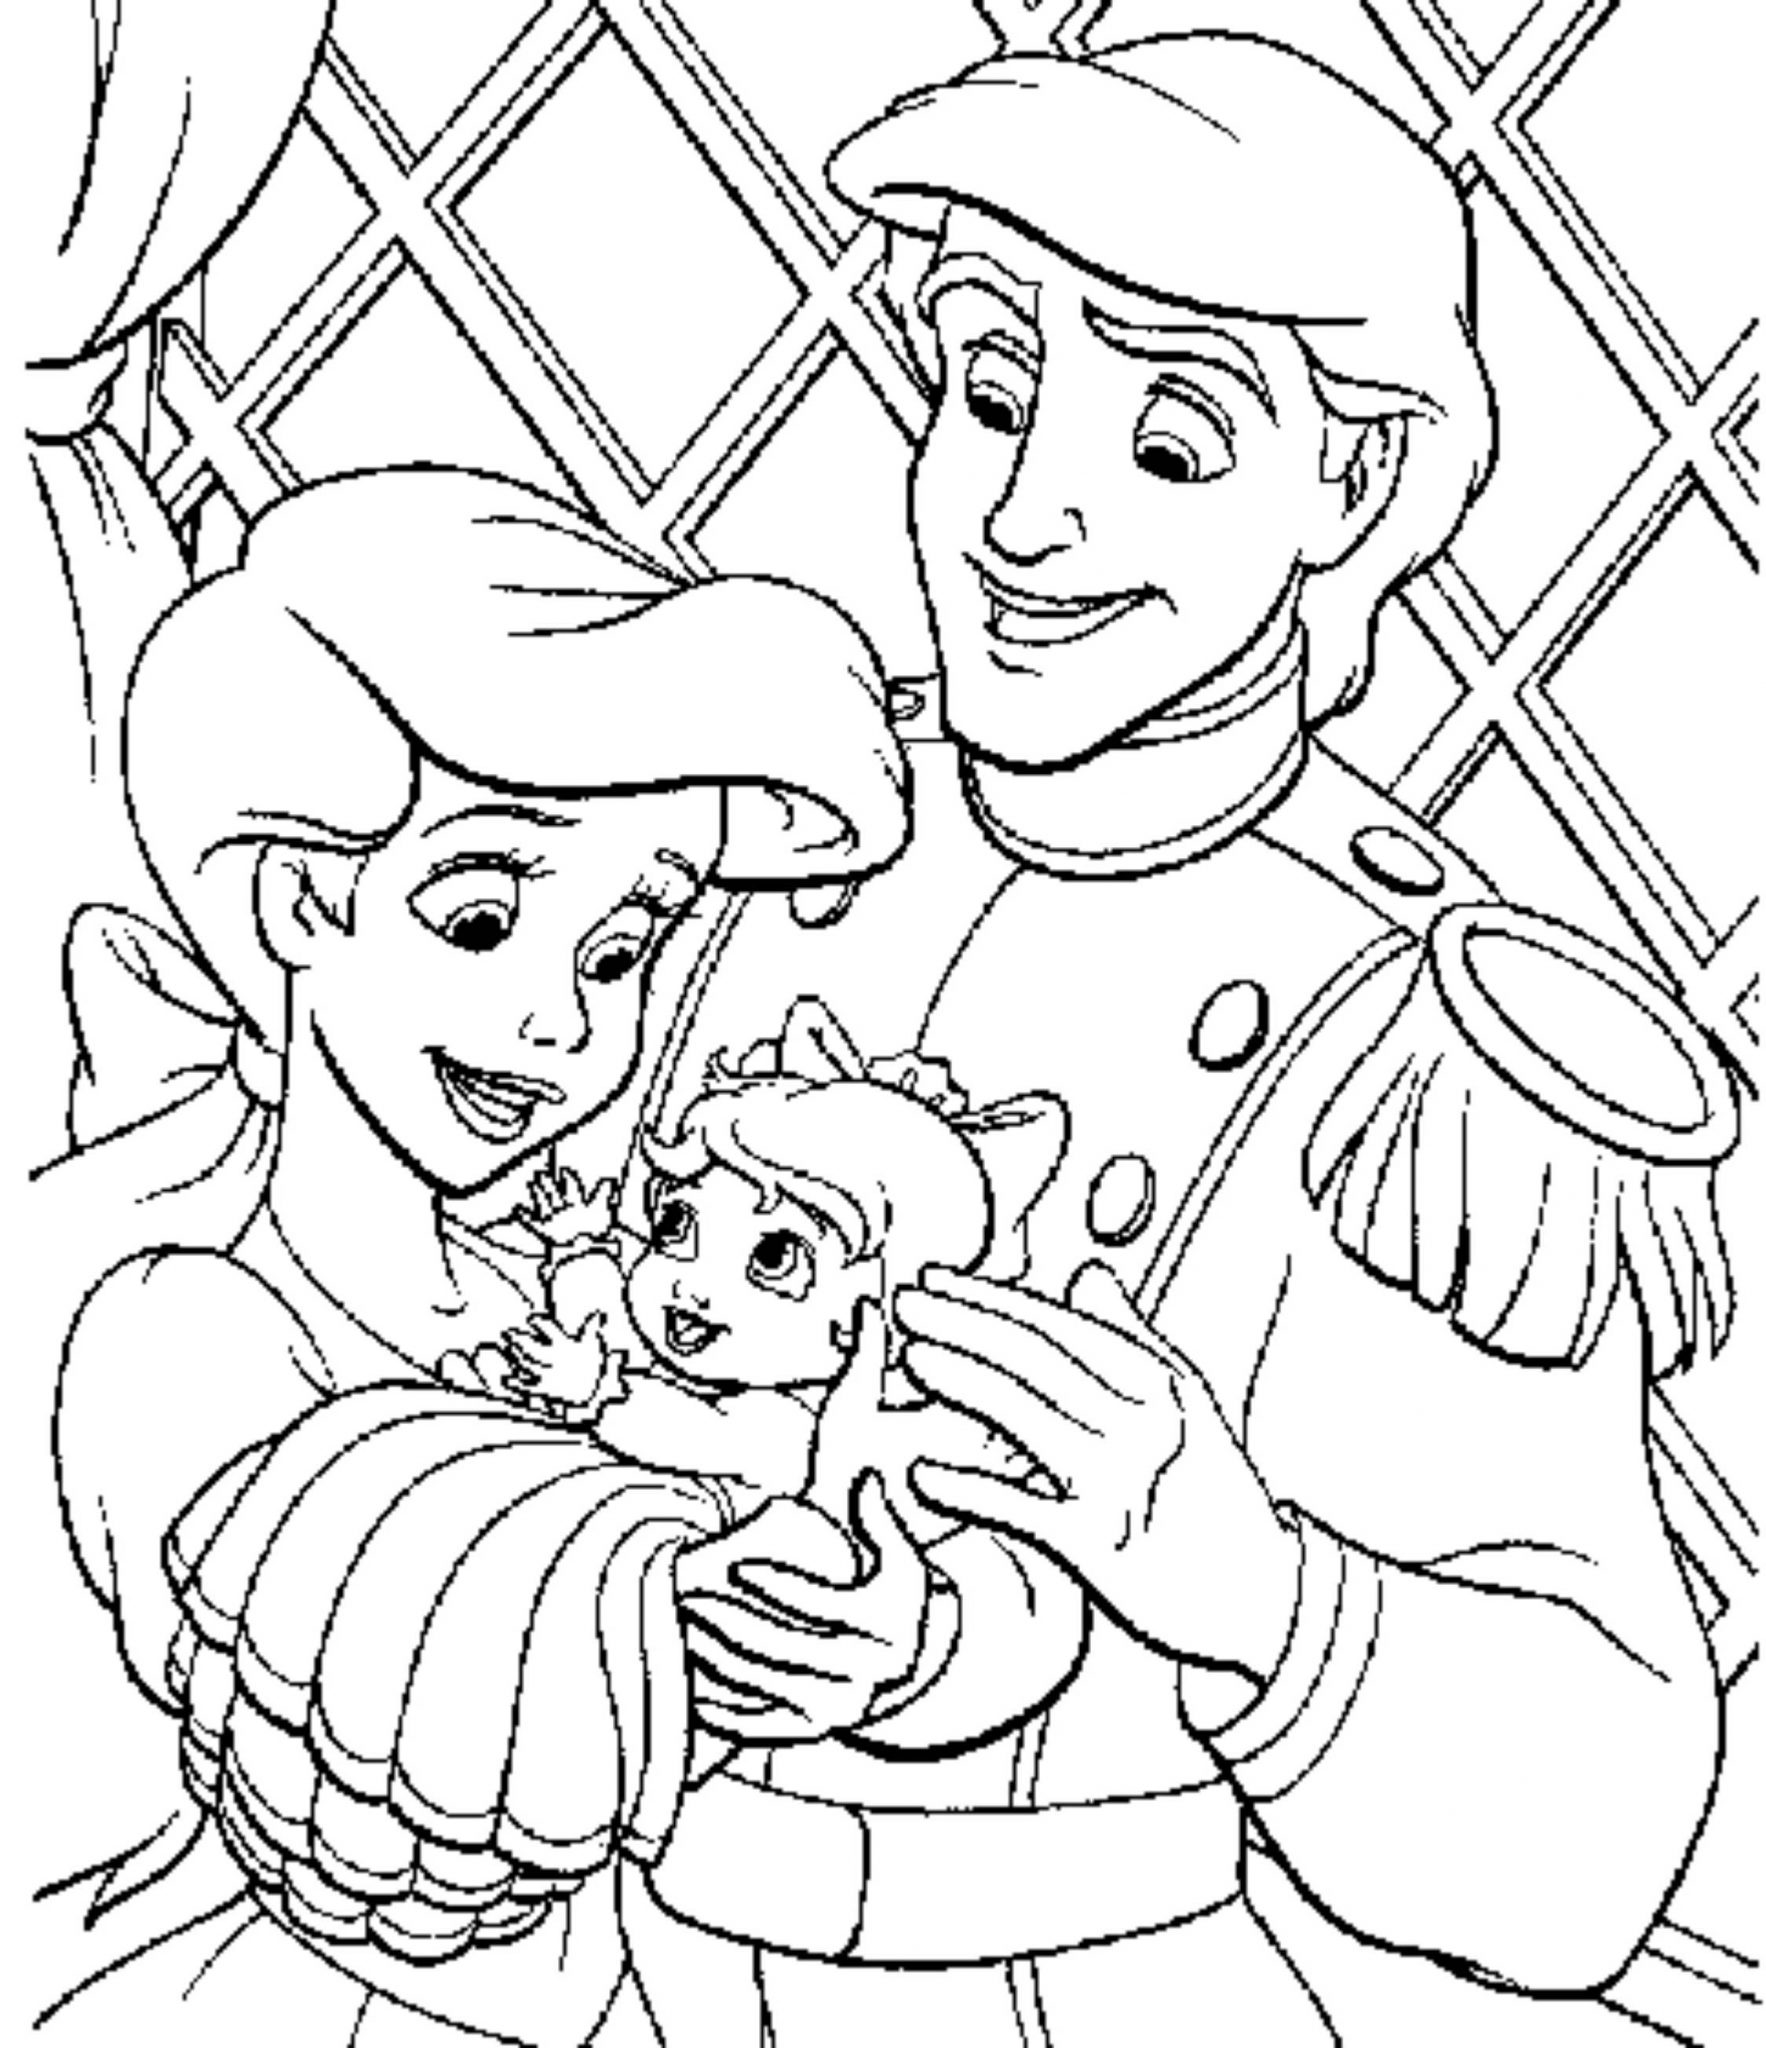 coloring pictures disney princesses print download princess coloring pages support the princesses pictures disney coloring